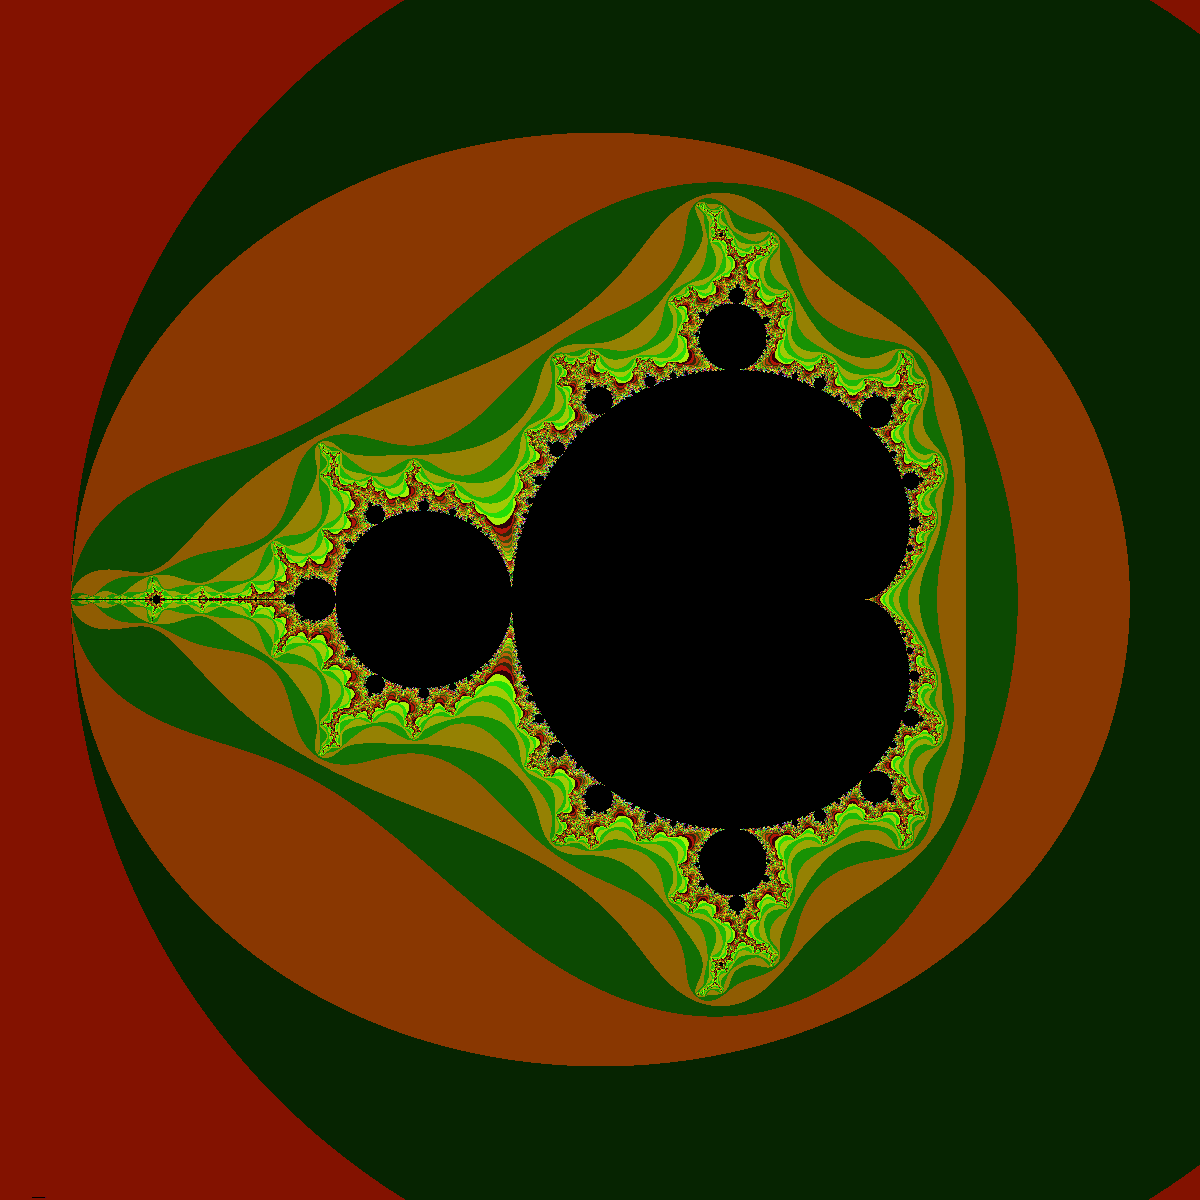 Mandelbrot set full size color band effect